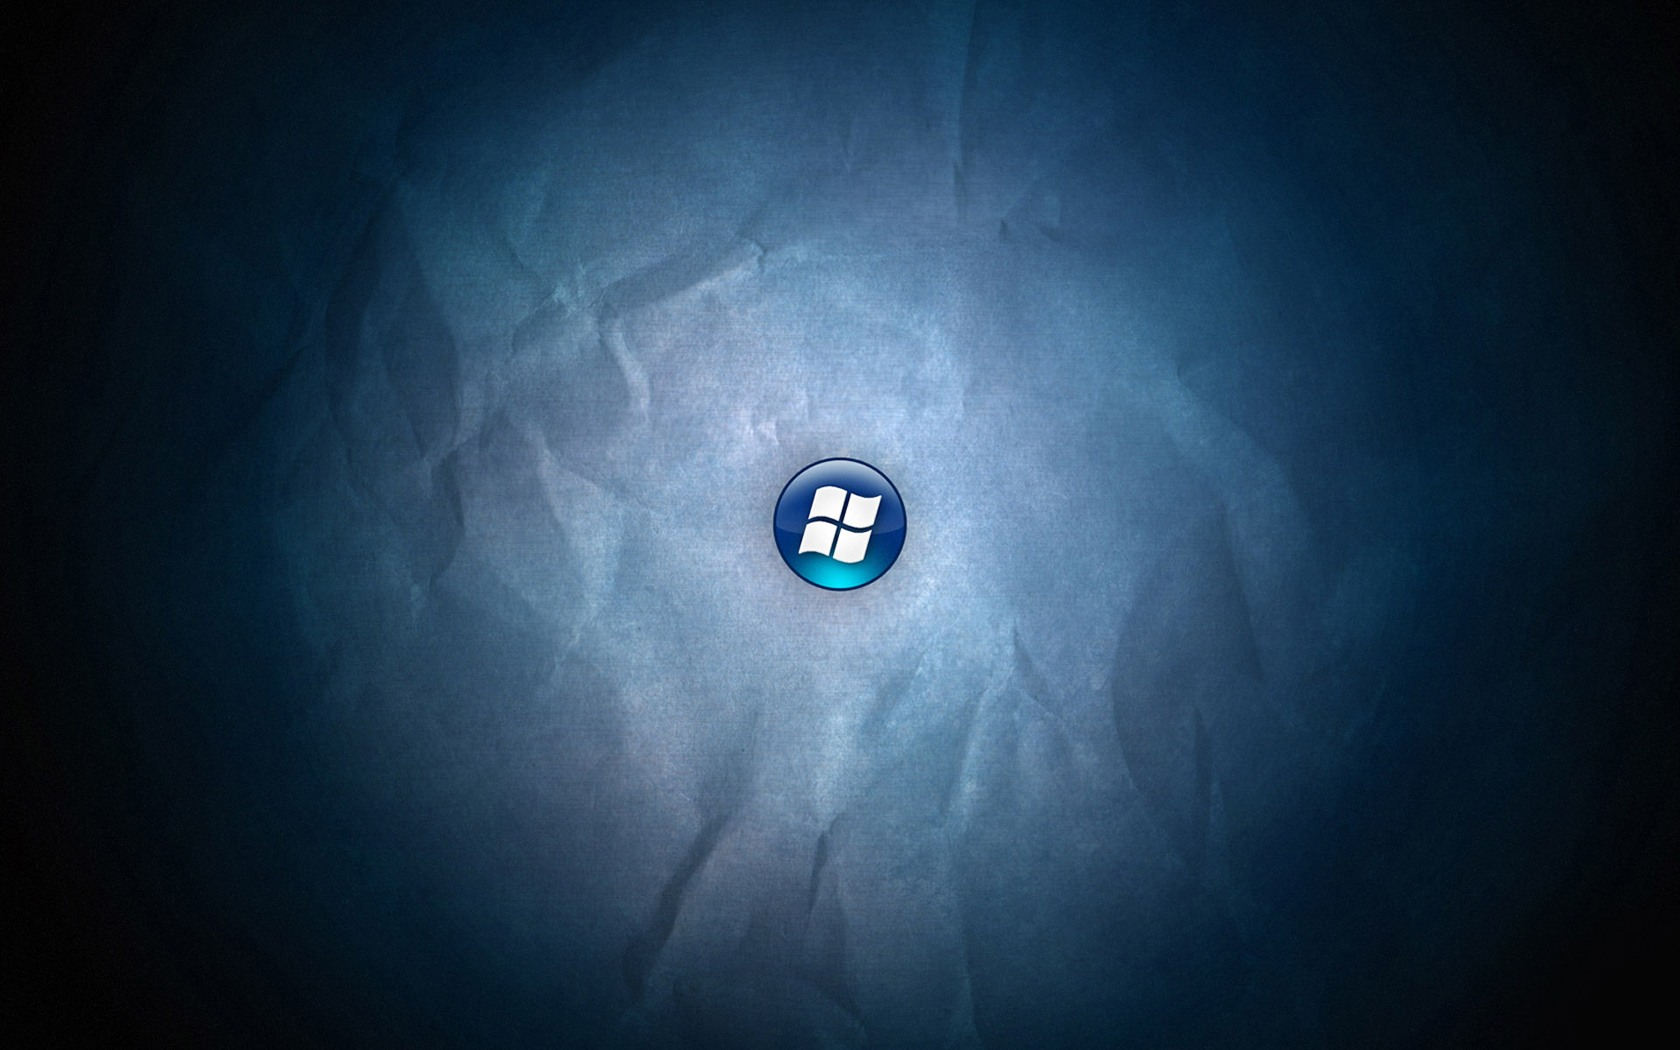 windows seven abstract cg wallpapers1680 1050 42